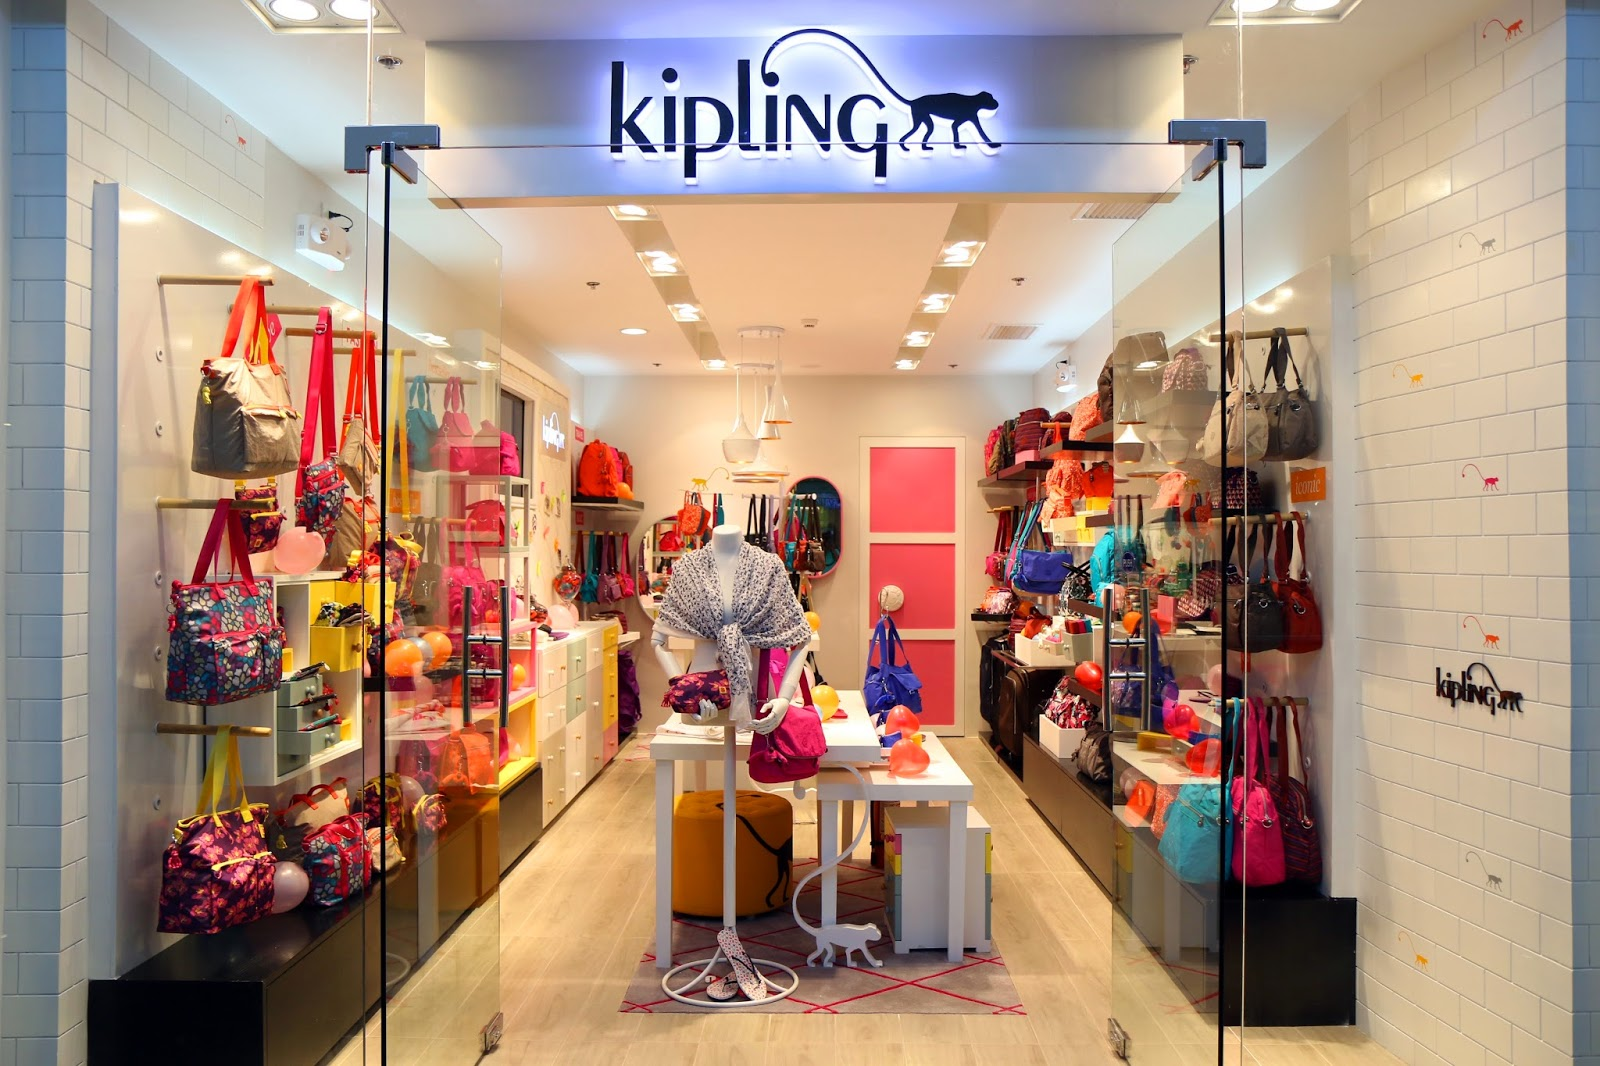 KIPLING offers a wide range of stylish, lightweight and practical designer handbags, totes, backpacks, luggage, wallets, accessories & more, suitable for all your daily occasions. Find a store near you now.